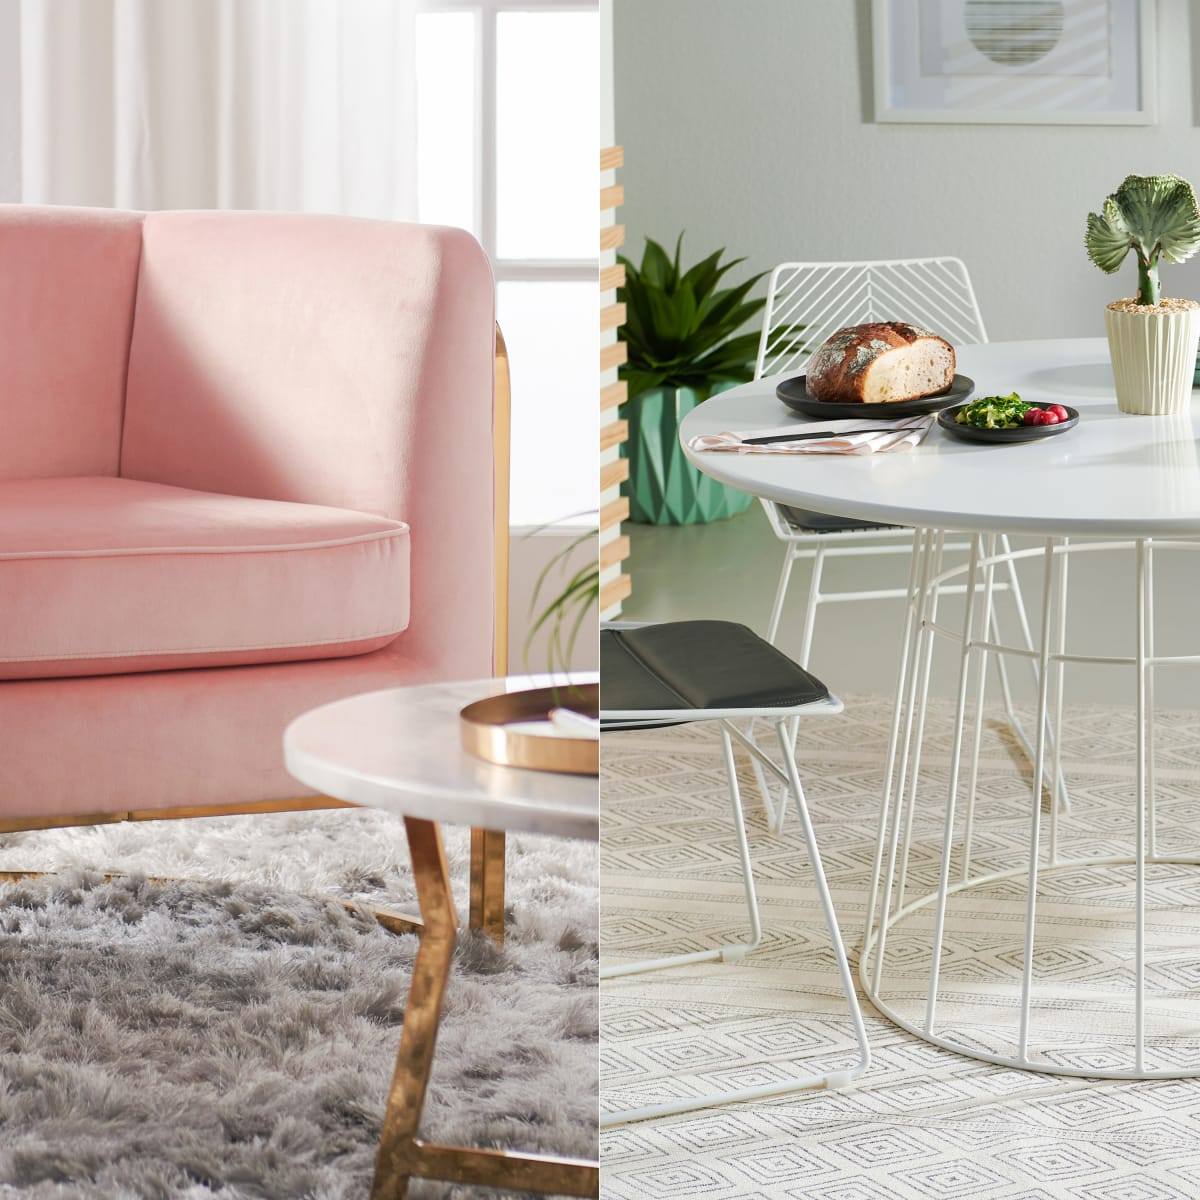 Walmart just launched a new modern furniture collection and its amazing